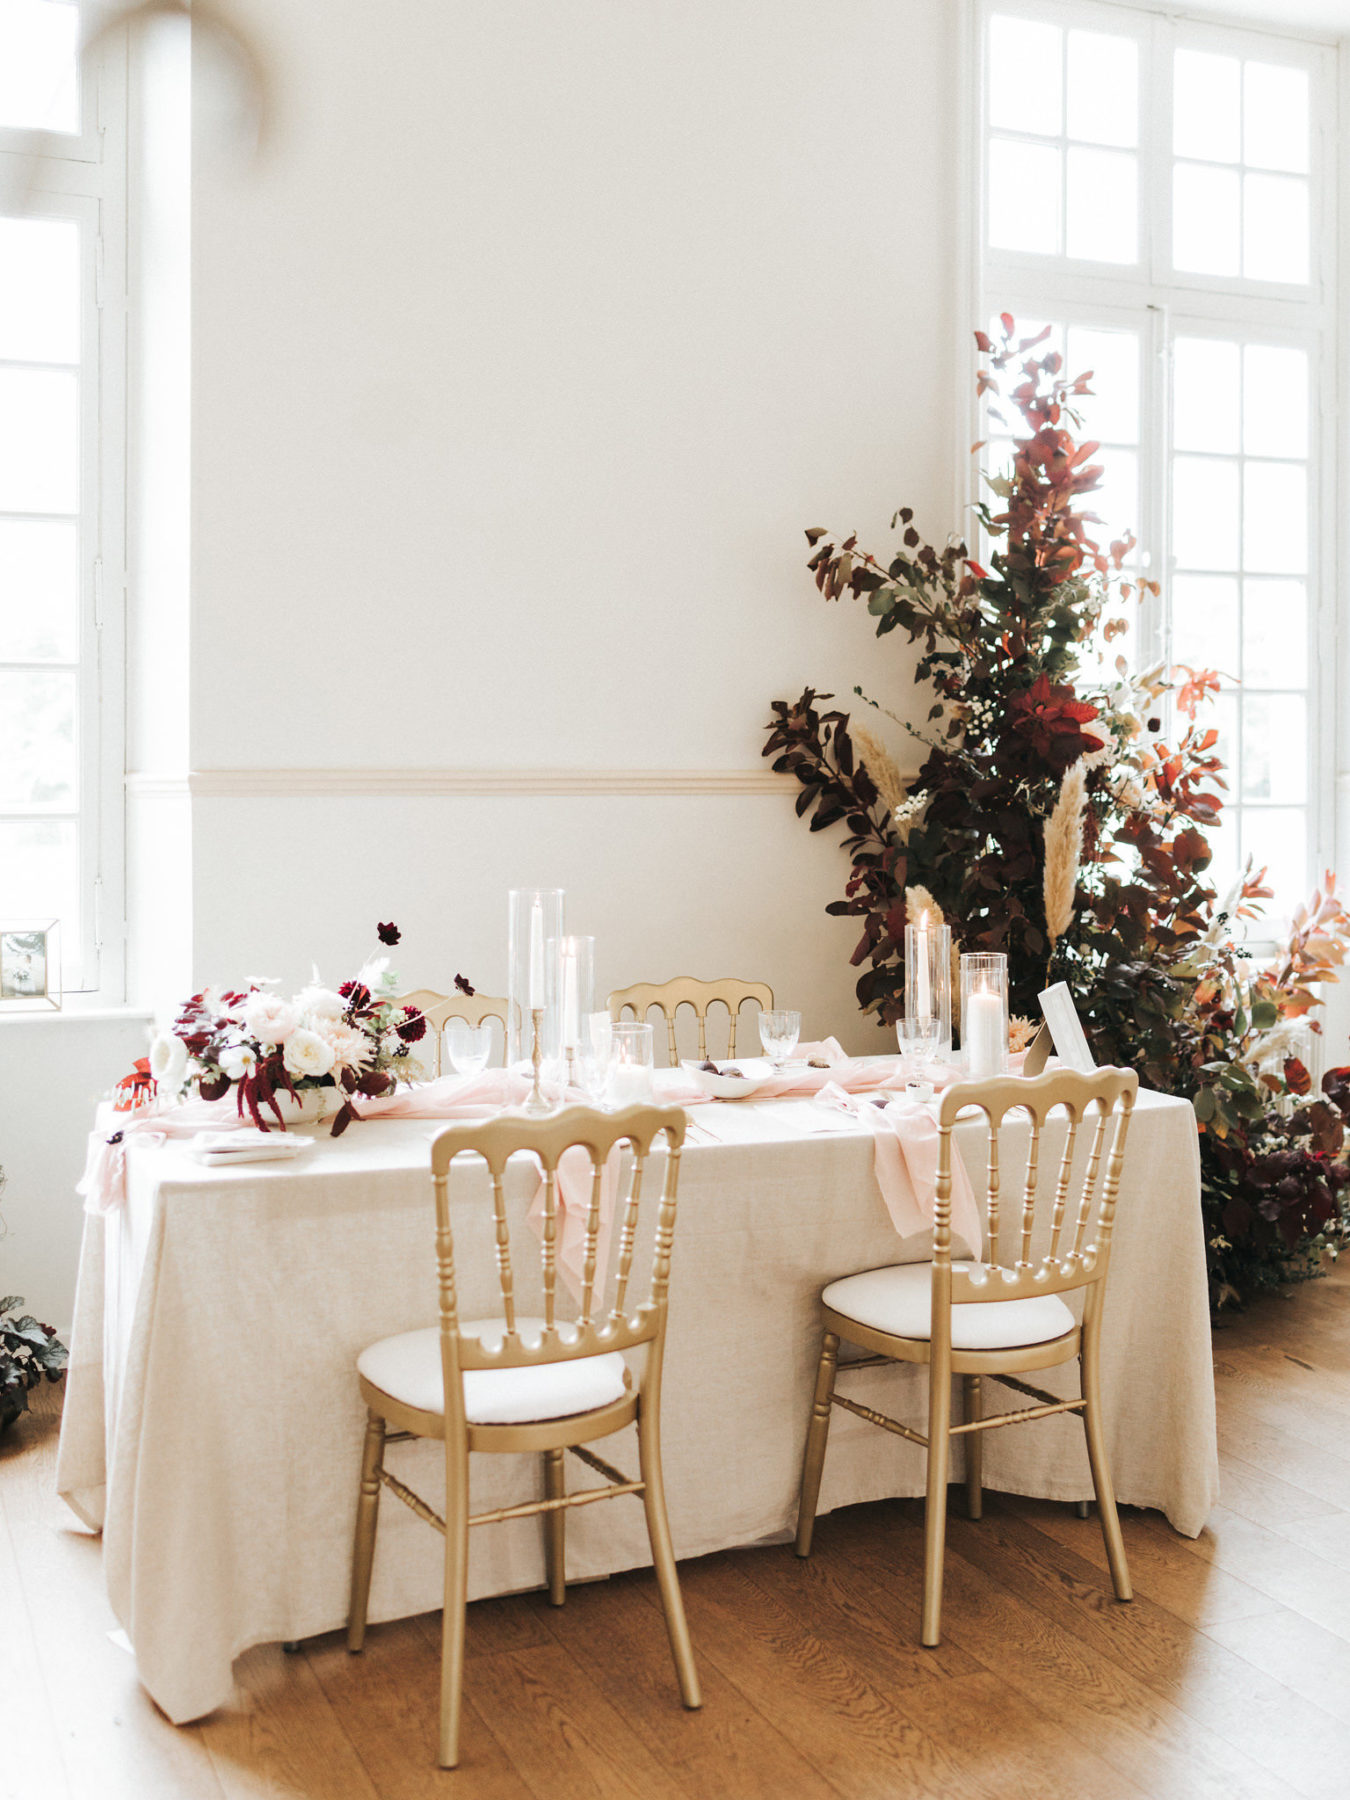 lettre_à_élise_events_fleuriste_décorateur_stylisme_wedding_design_scénographie_salon_festival_mariage_nancy_bonnie_and_clyde_événement_élégant_nature_décor_de_table_décoration